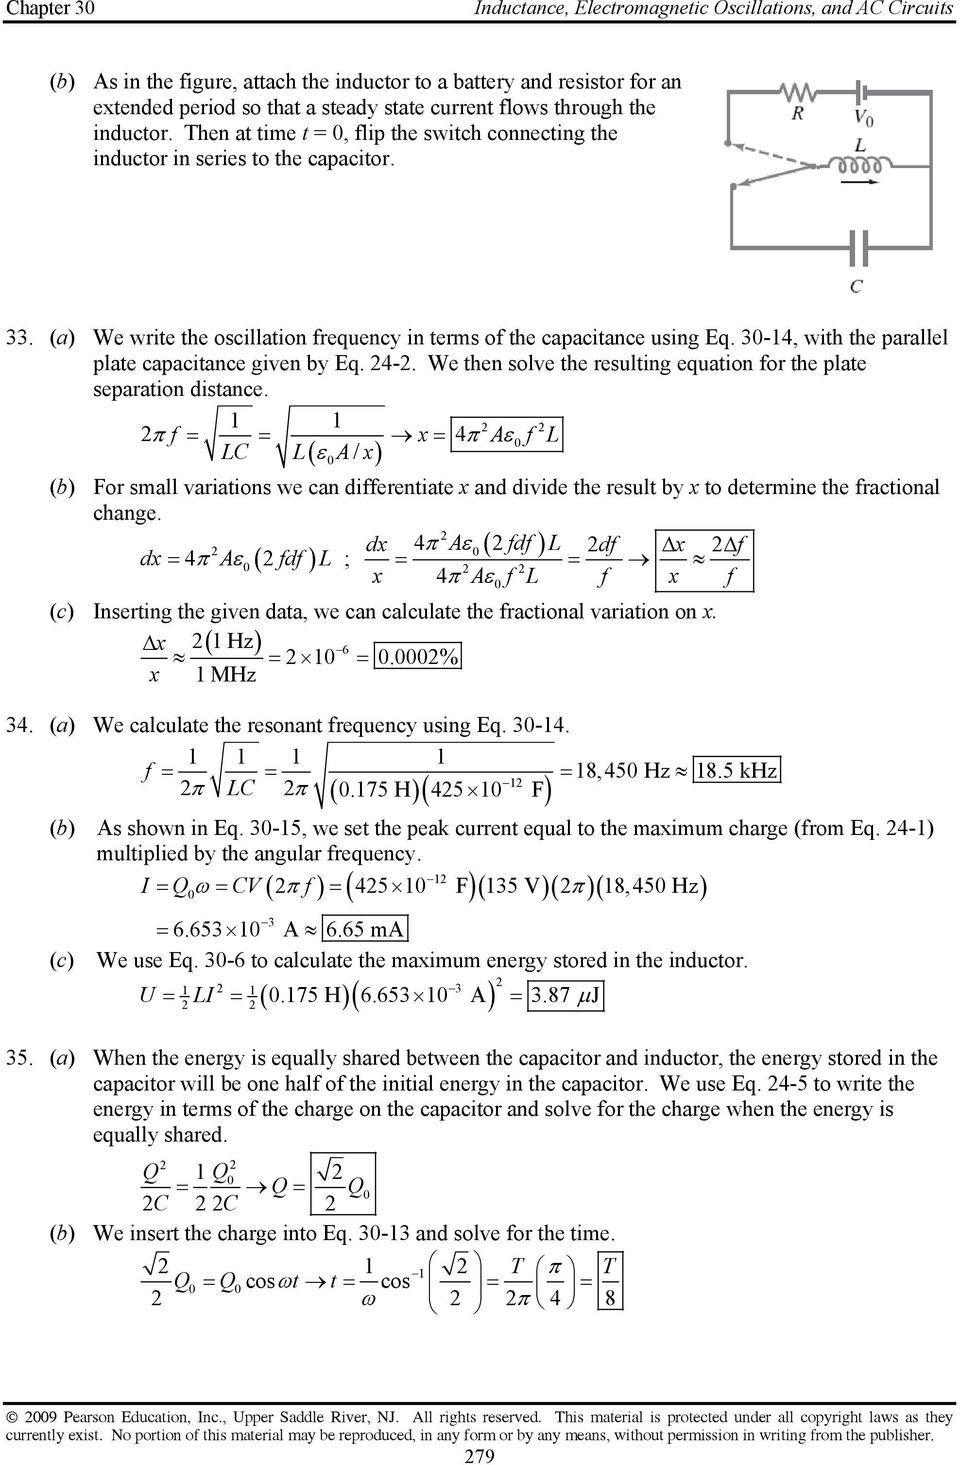 Chapter 30 Inductance Electromagnetic Oscillations And Ac Voltage Divider Calculator 3 4 With The Parallel Plate Capacitance Given By Eq